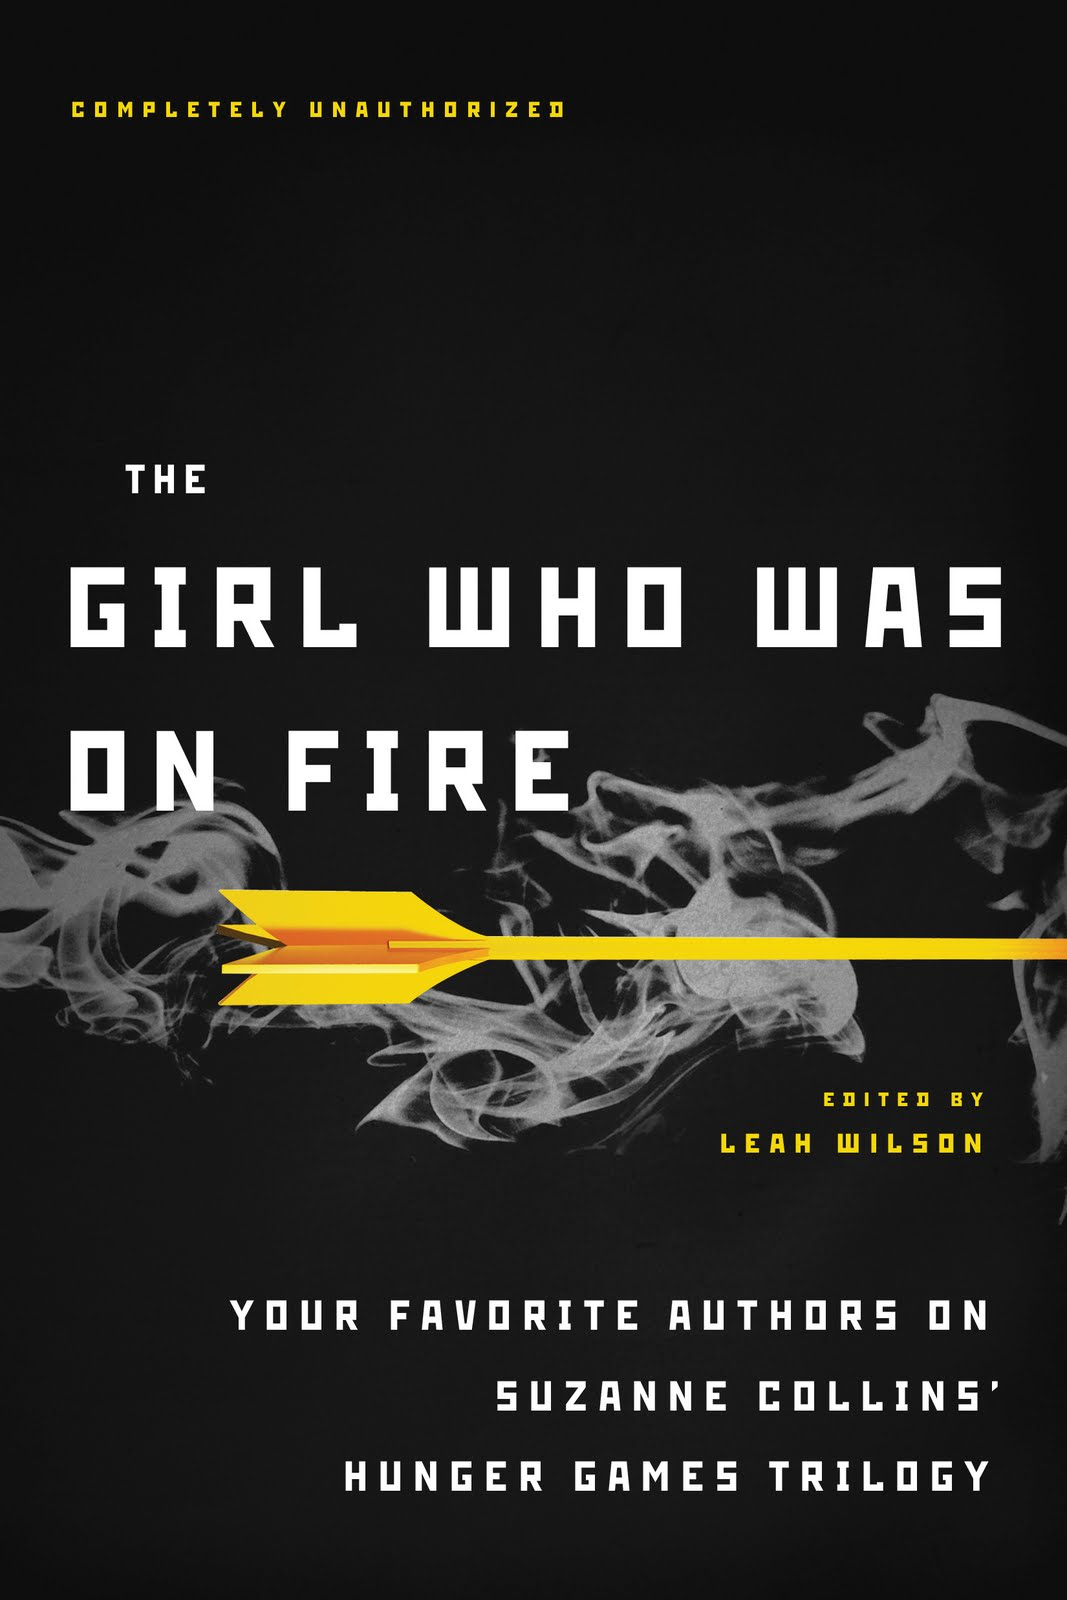 the girl who was on fire edited by leah wilson Anybody into playing adult flash games? I used to fuck around on Games of ...